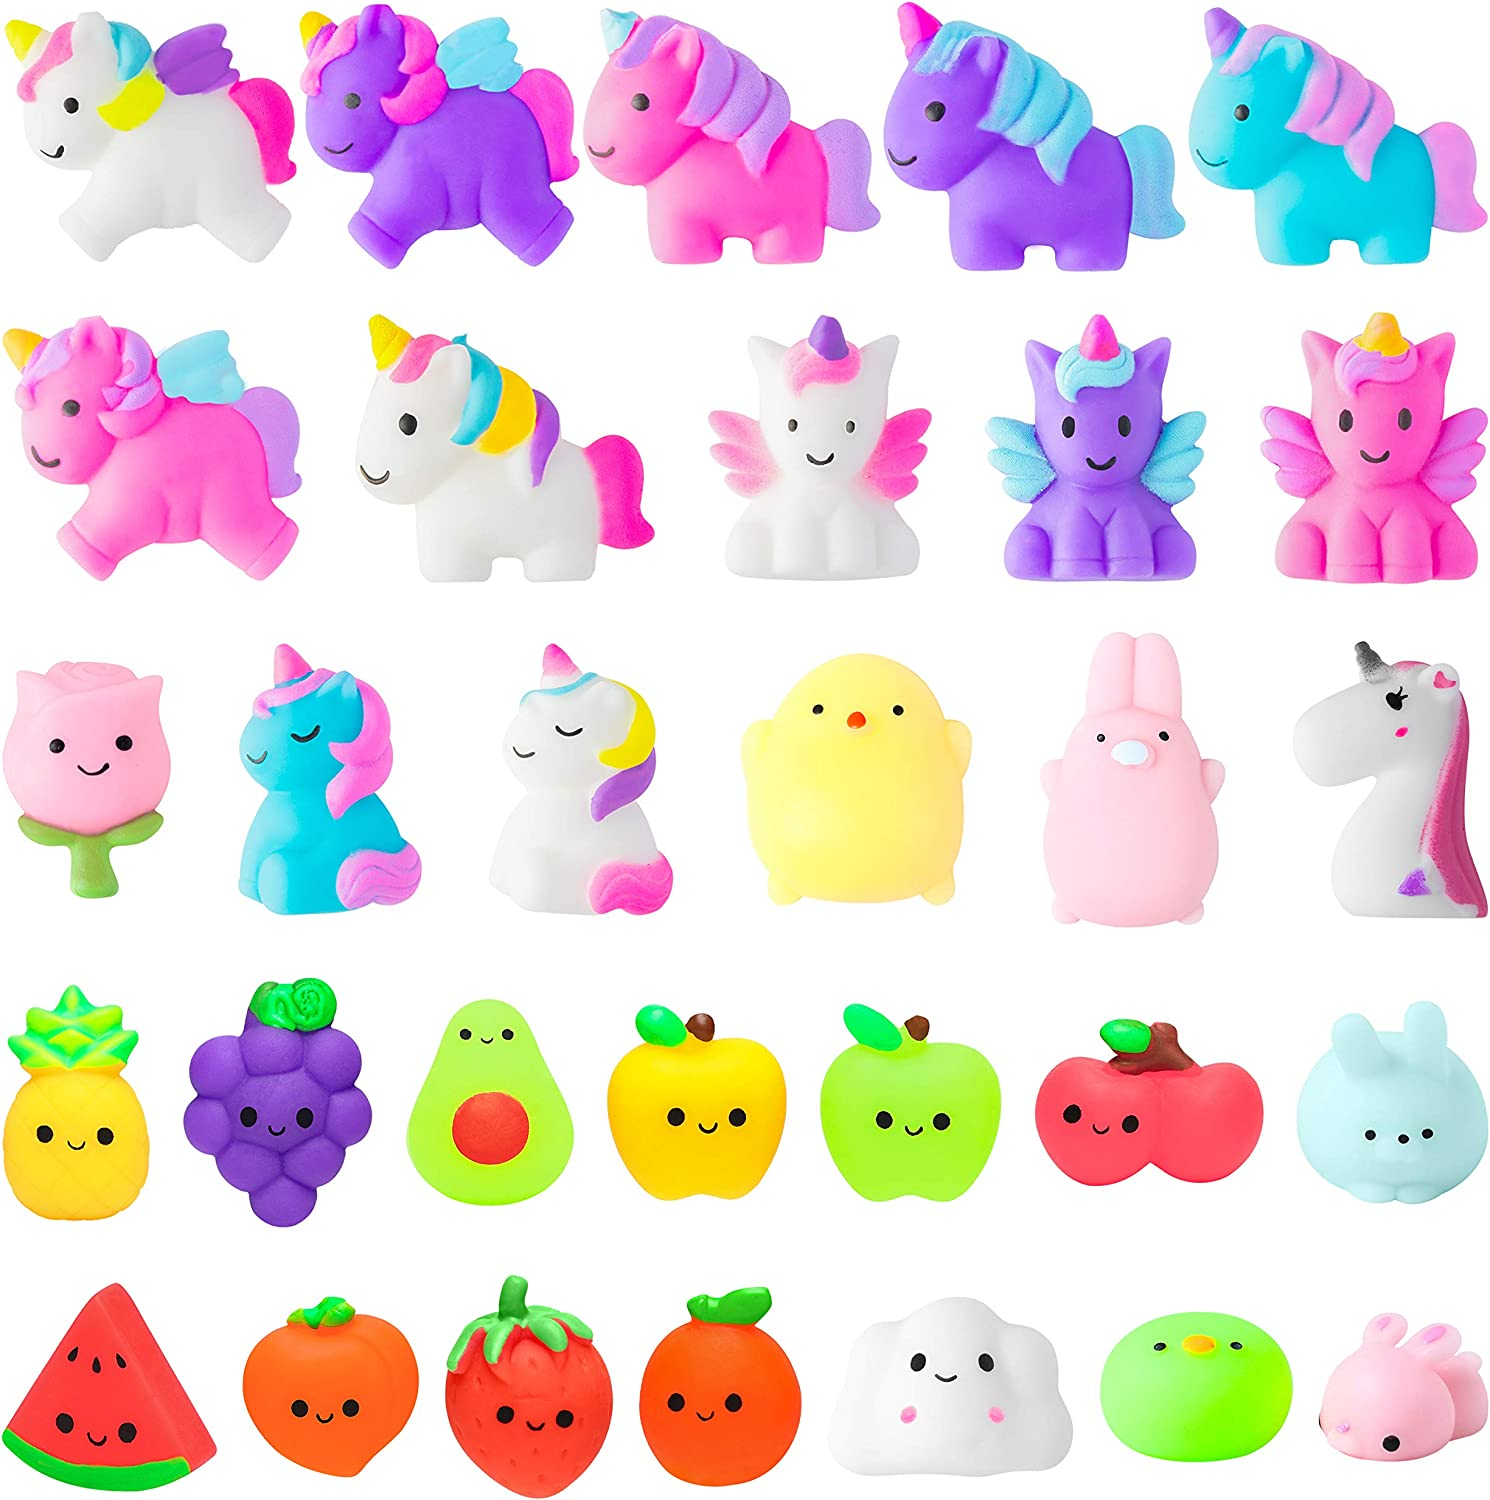 WATINC 30Pcs Fidget Toys Mochi Squeeze Toys for Boy & Girls Birthday Gift, Unicorn Fruit Cat Animals Mochi Squeeze Stress Relief Party Favor for Kids, Goodie Bags Egg Fillers for Kids,Classroom Prize